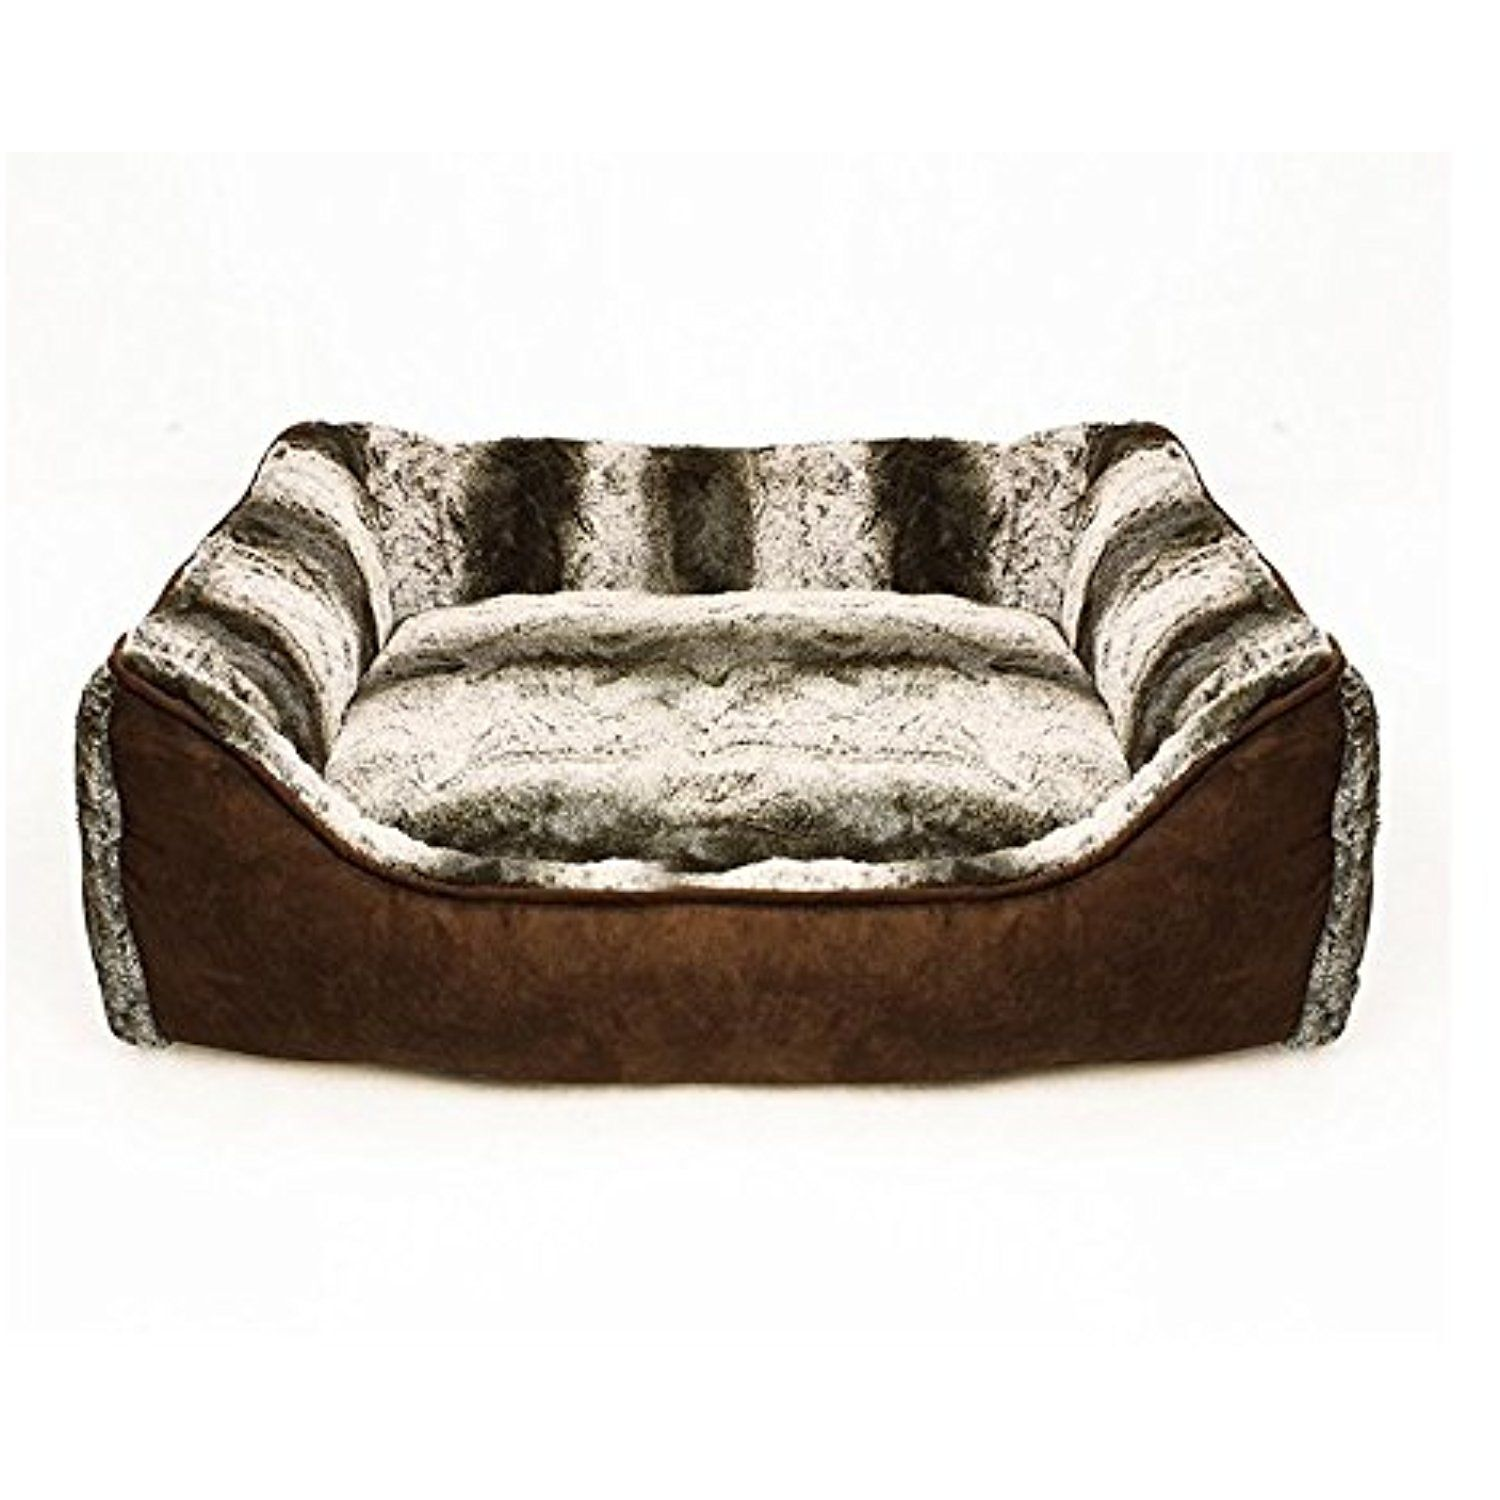 Joyelf Medium Dog Bed Orthopedic Dog Bed With Removable Washable Cover Warm Dog Bed For Small To Medium Dogs An Medium Dog Bed Warm Dog Beds Orthopedic Dog Bed